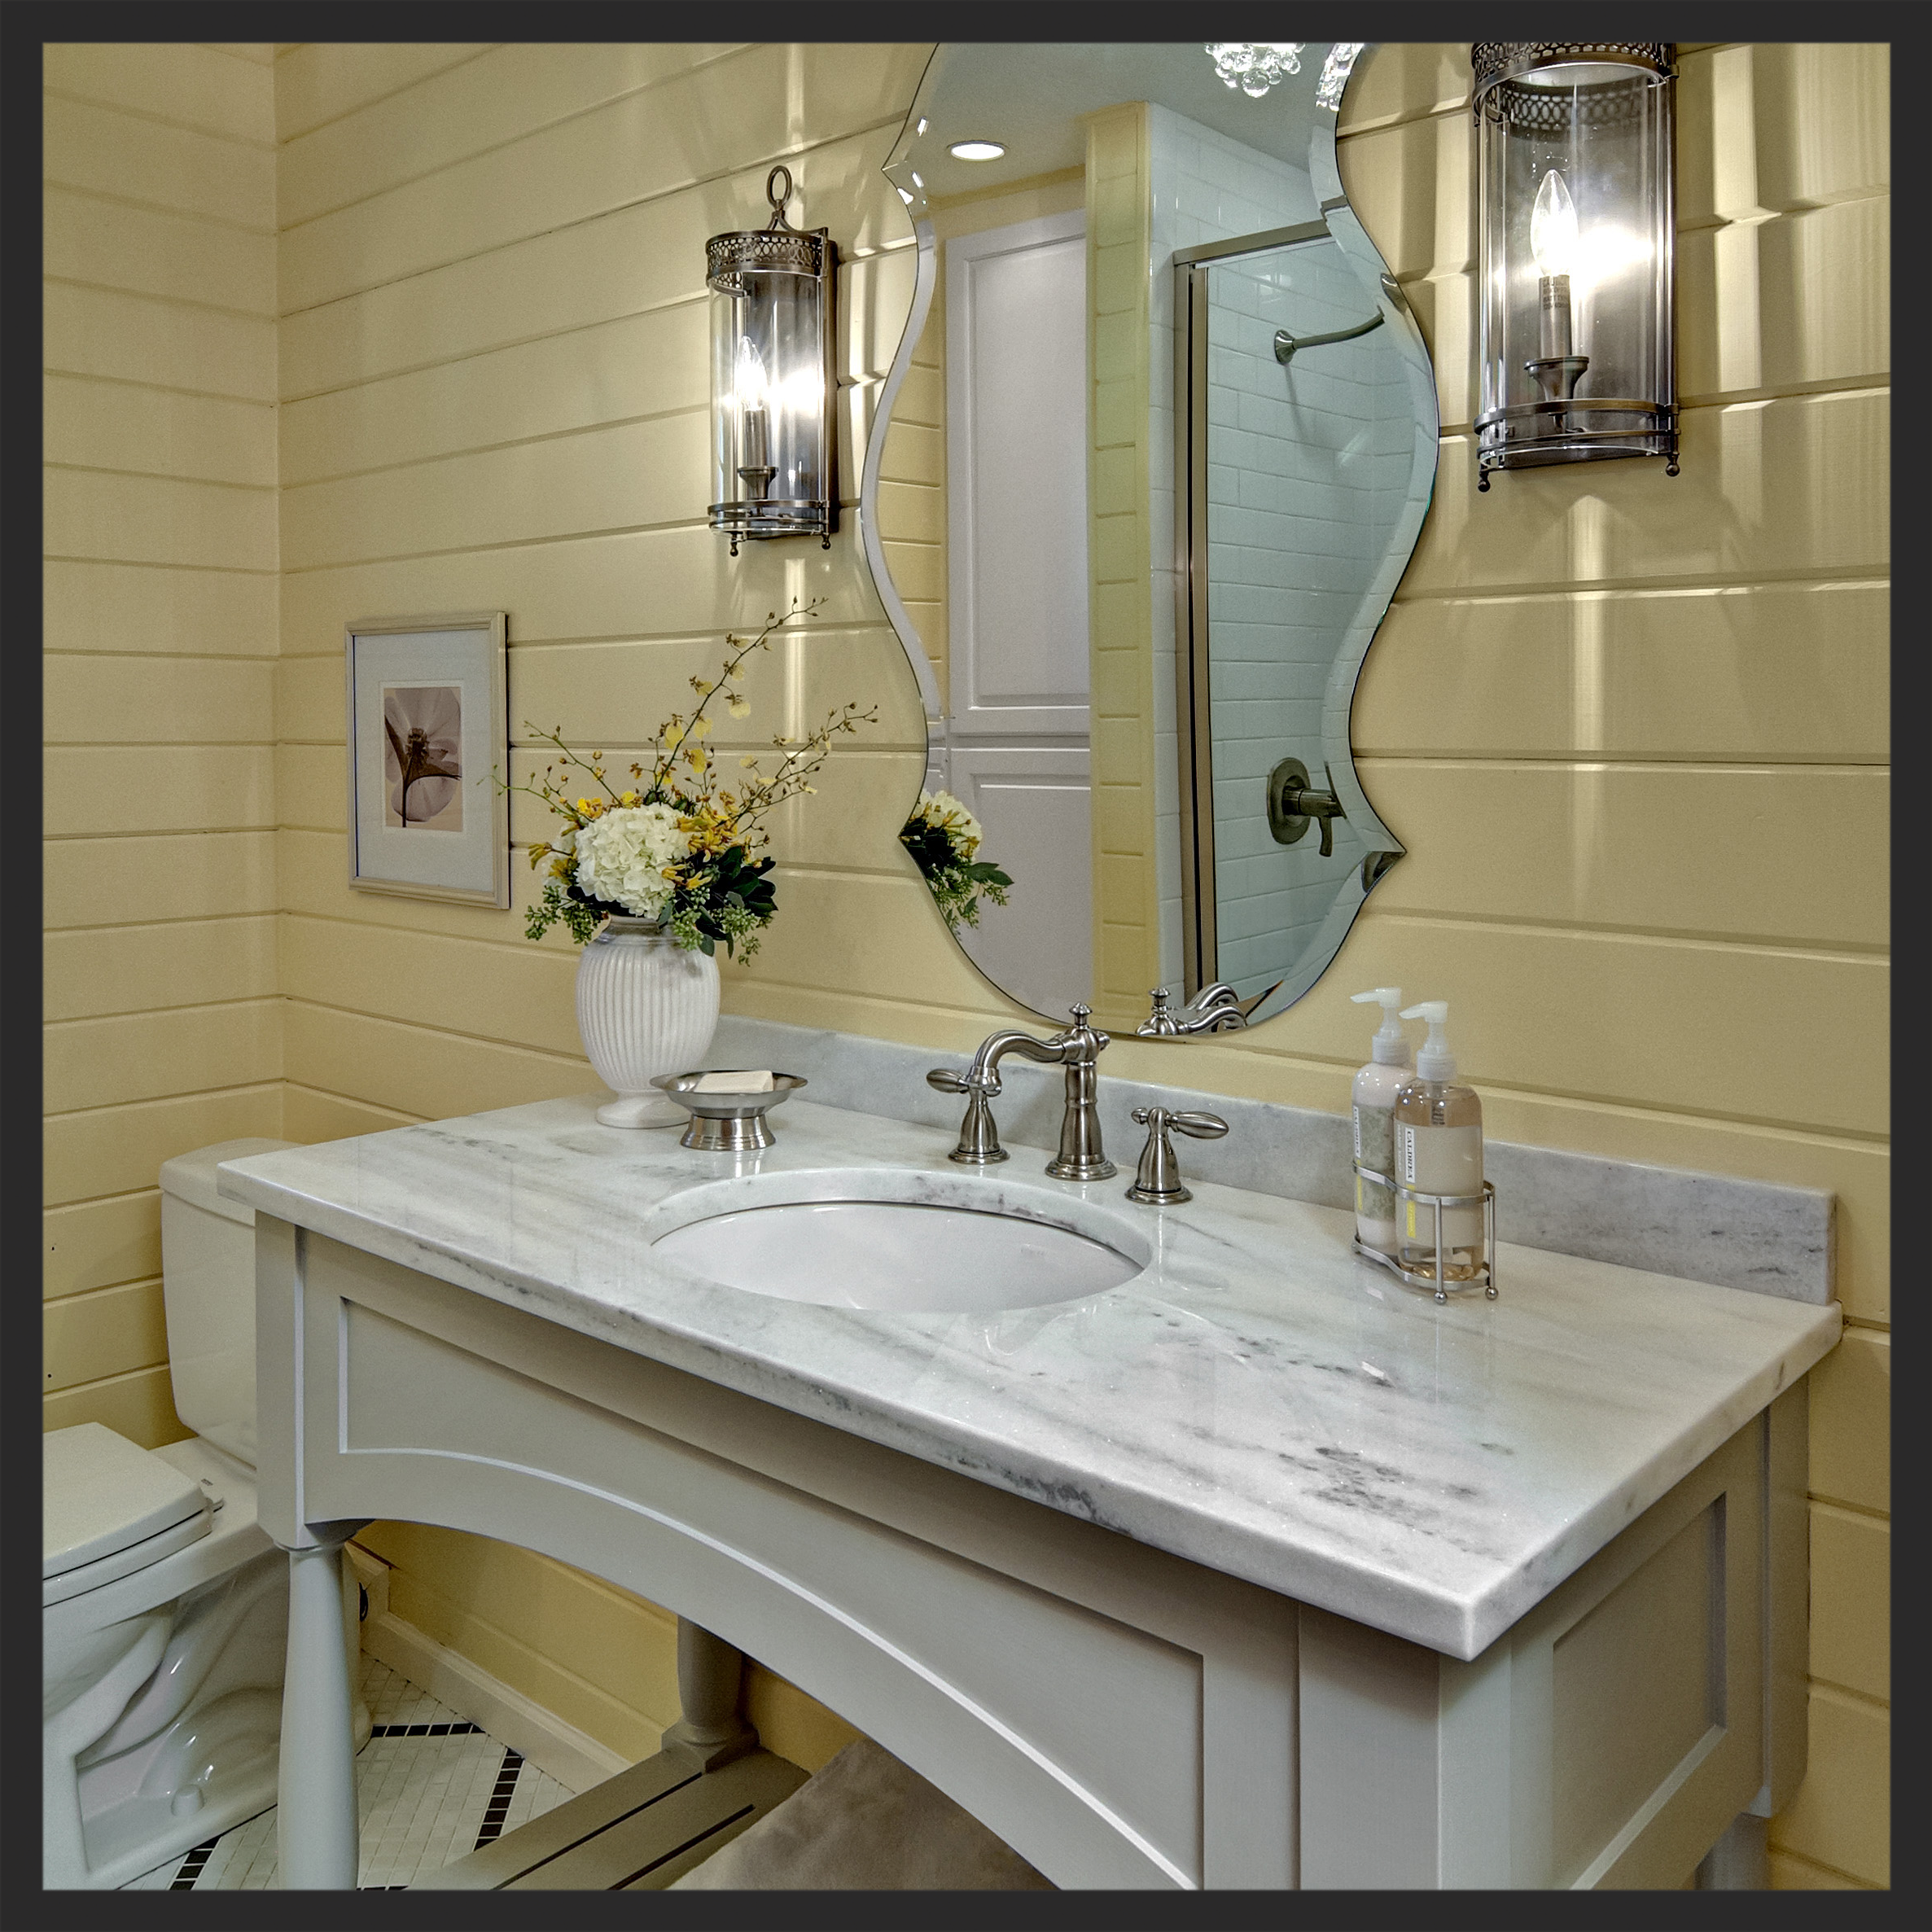 This Cottage Chic Bathroom is a perfect fit for the yellow slat-boards, custom built cabinetry with Carrara marble top, rustic sconces and beveled mirror to swoon for.